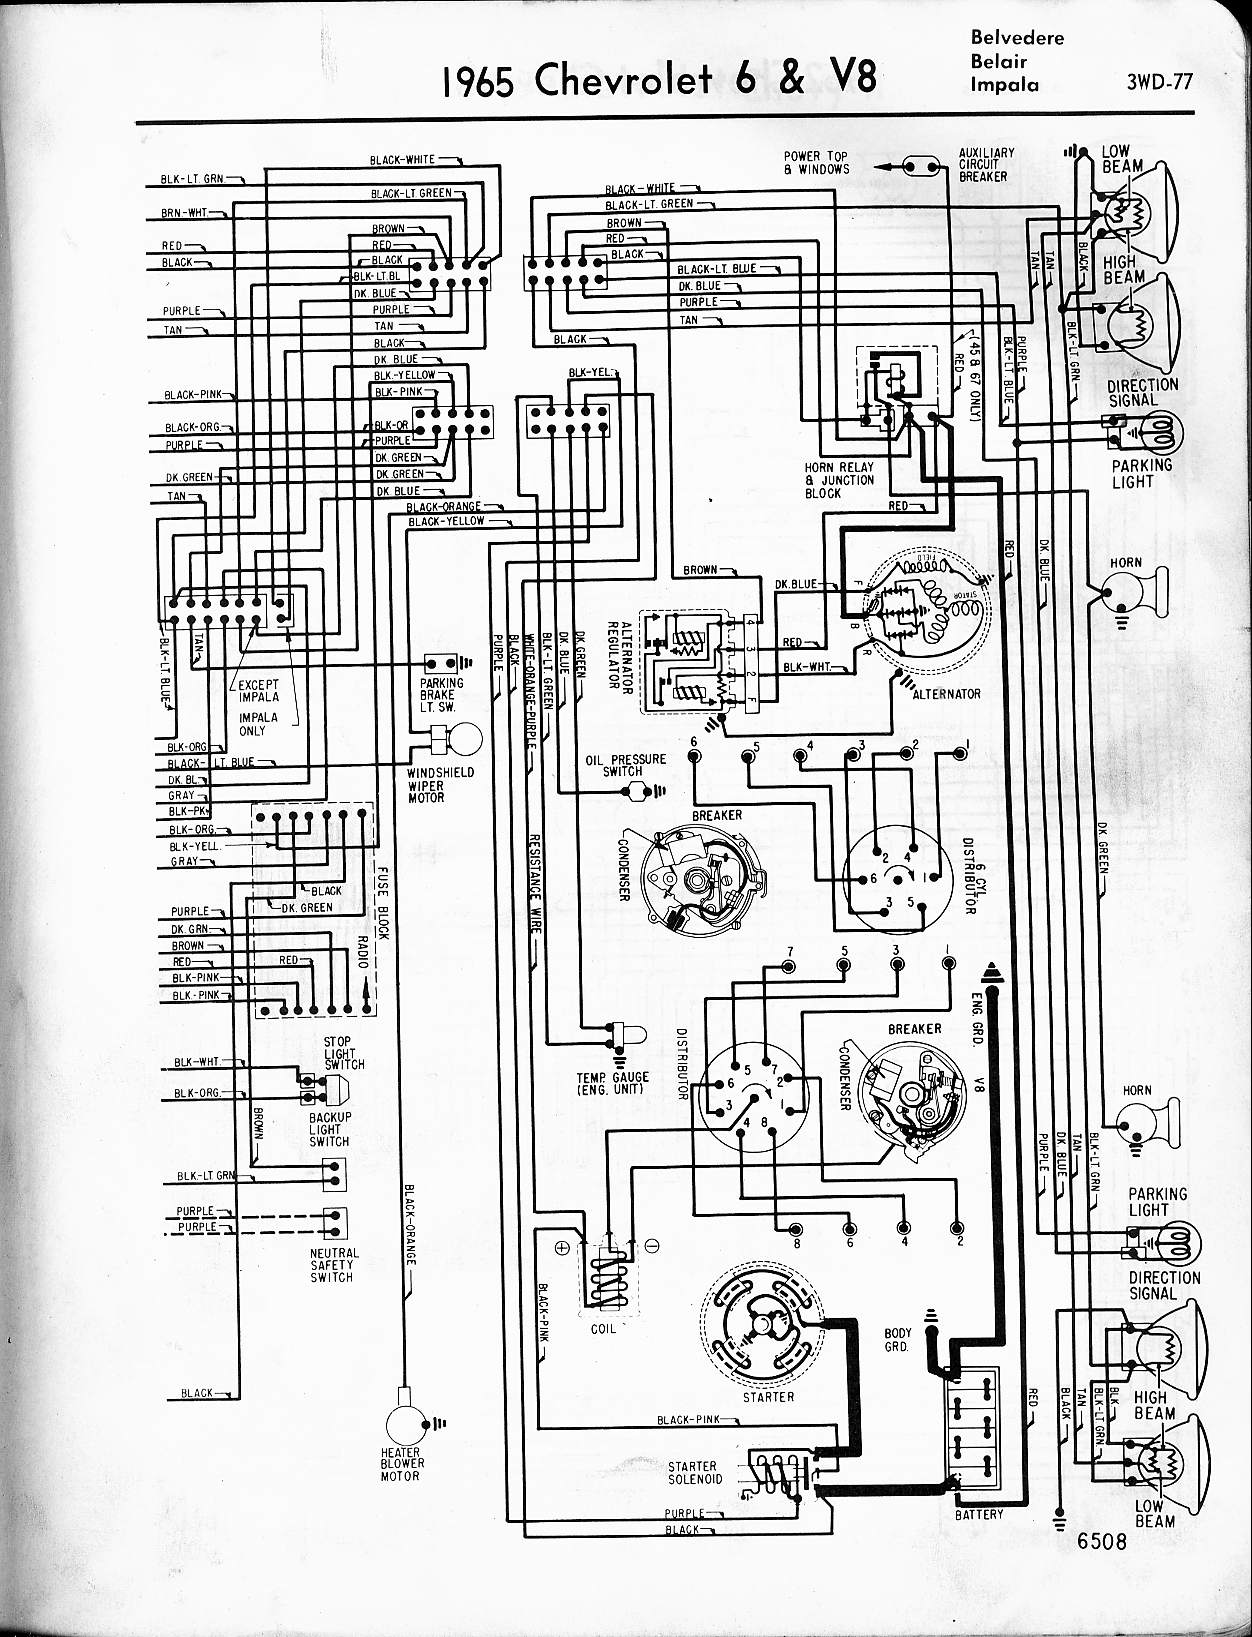 MWireChev65_3WD 077 57 65 chevy wiring diagrams 1964 impala ss wiring diagram at n-0.co